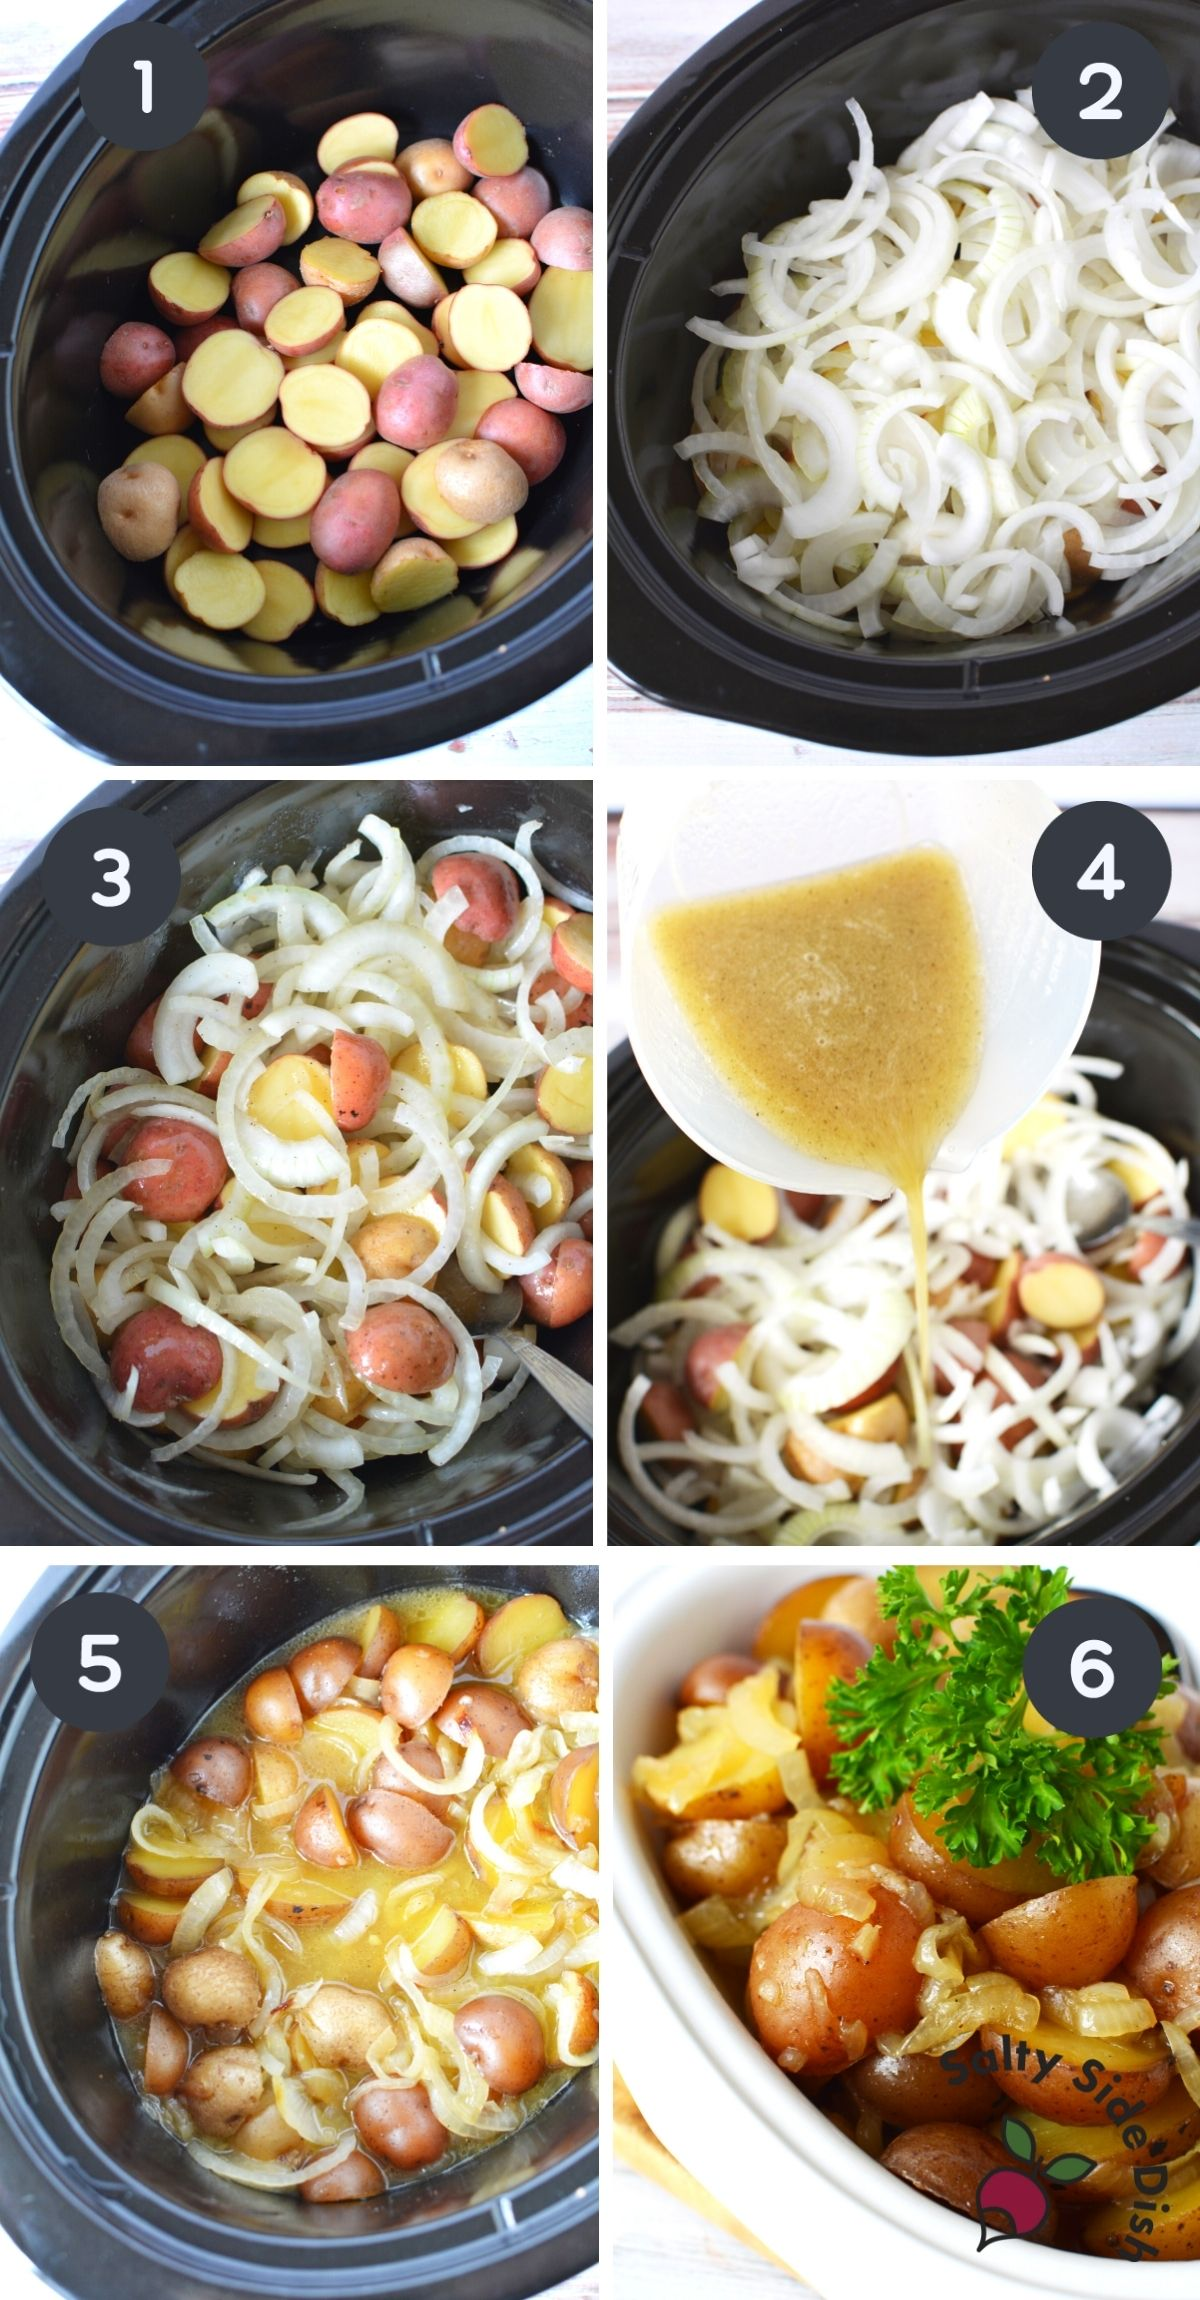 6 image collage of potatoes and onions being added to crock pot.